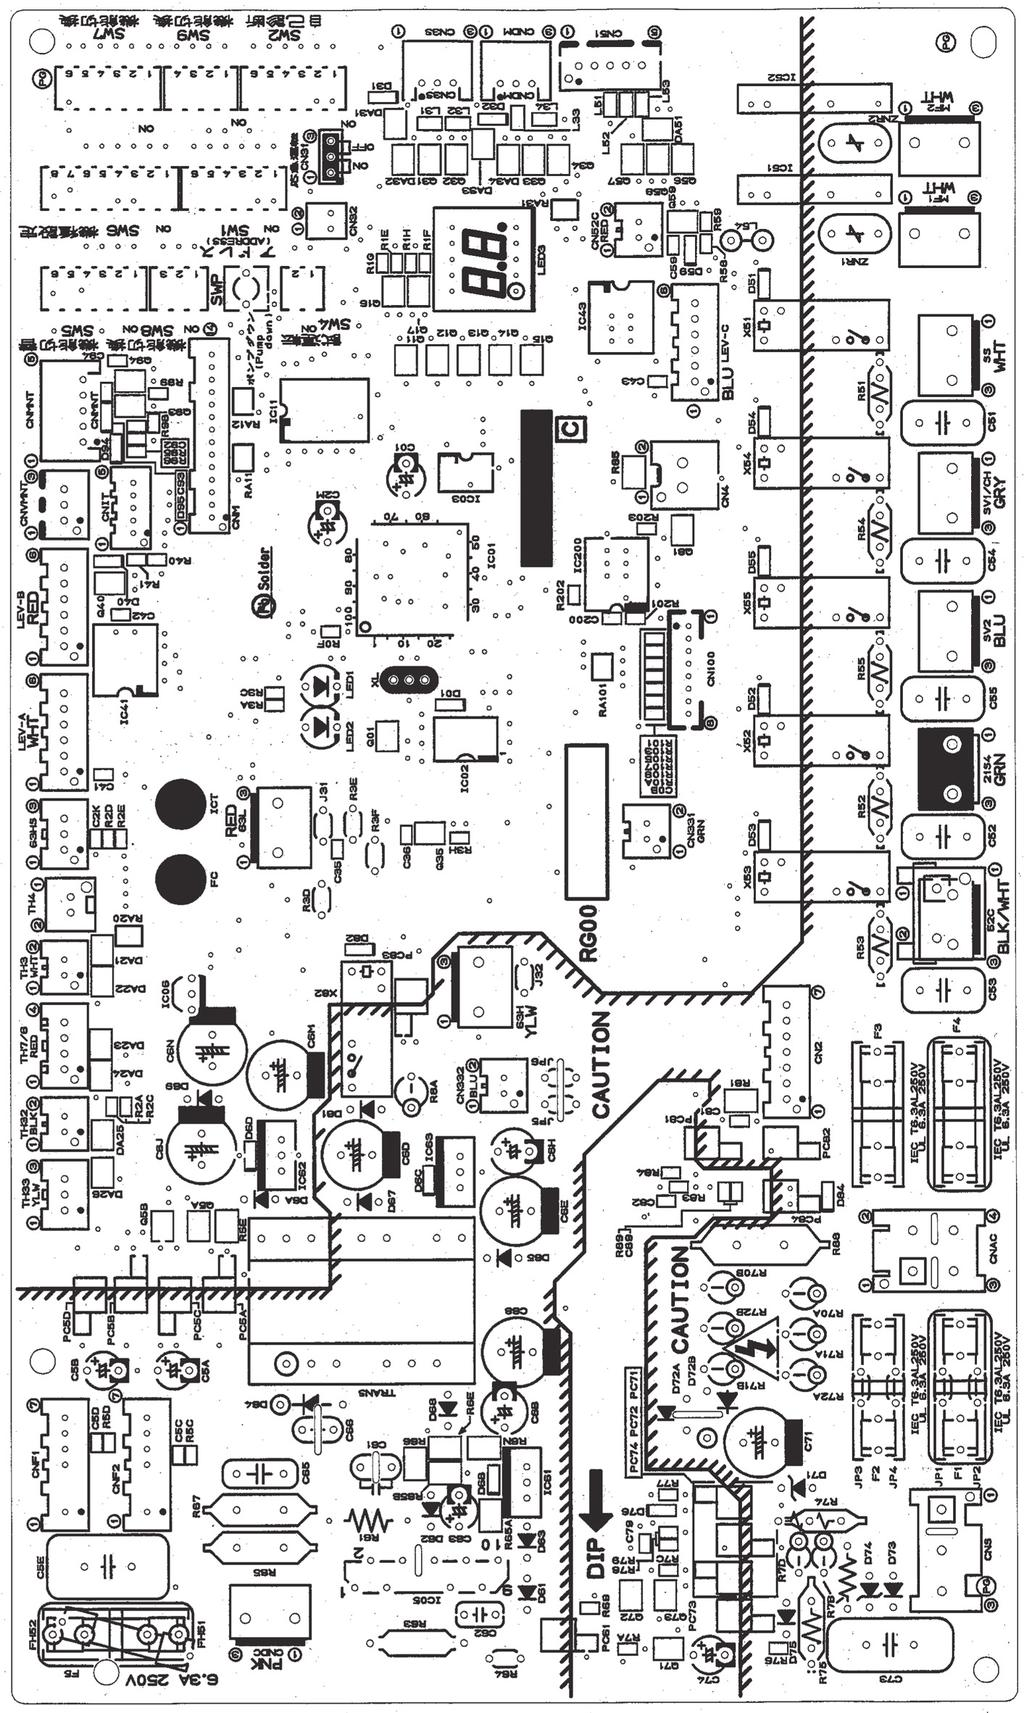 Service Manual R410a Split Type Heat Pump Air Conditioners Mitsubishi Msz Wiring Diagram Outdoor Controller Circuit Board Puhz P00vha3r